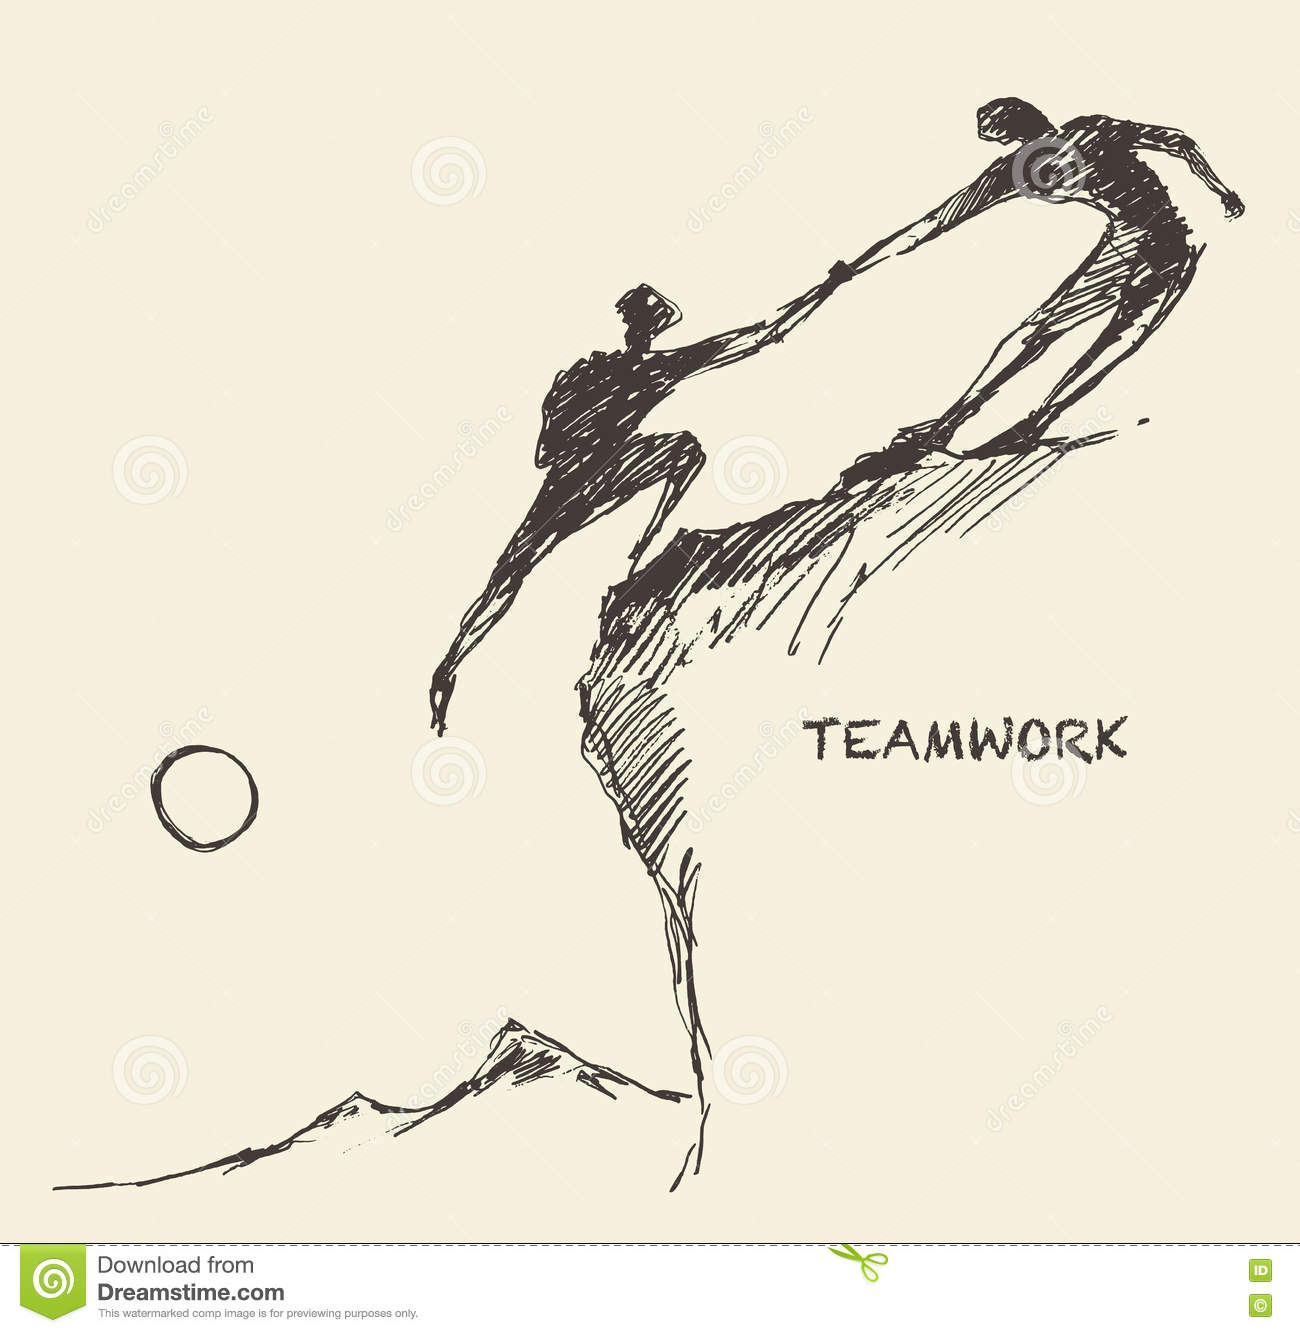 Draw helping man climb teamwork partnership sketch